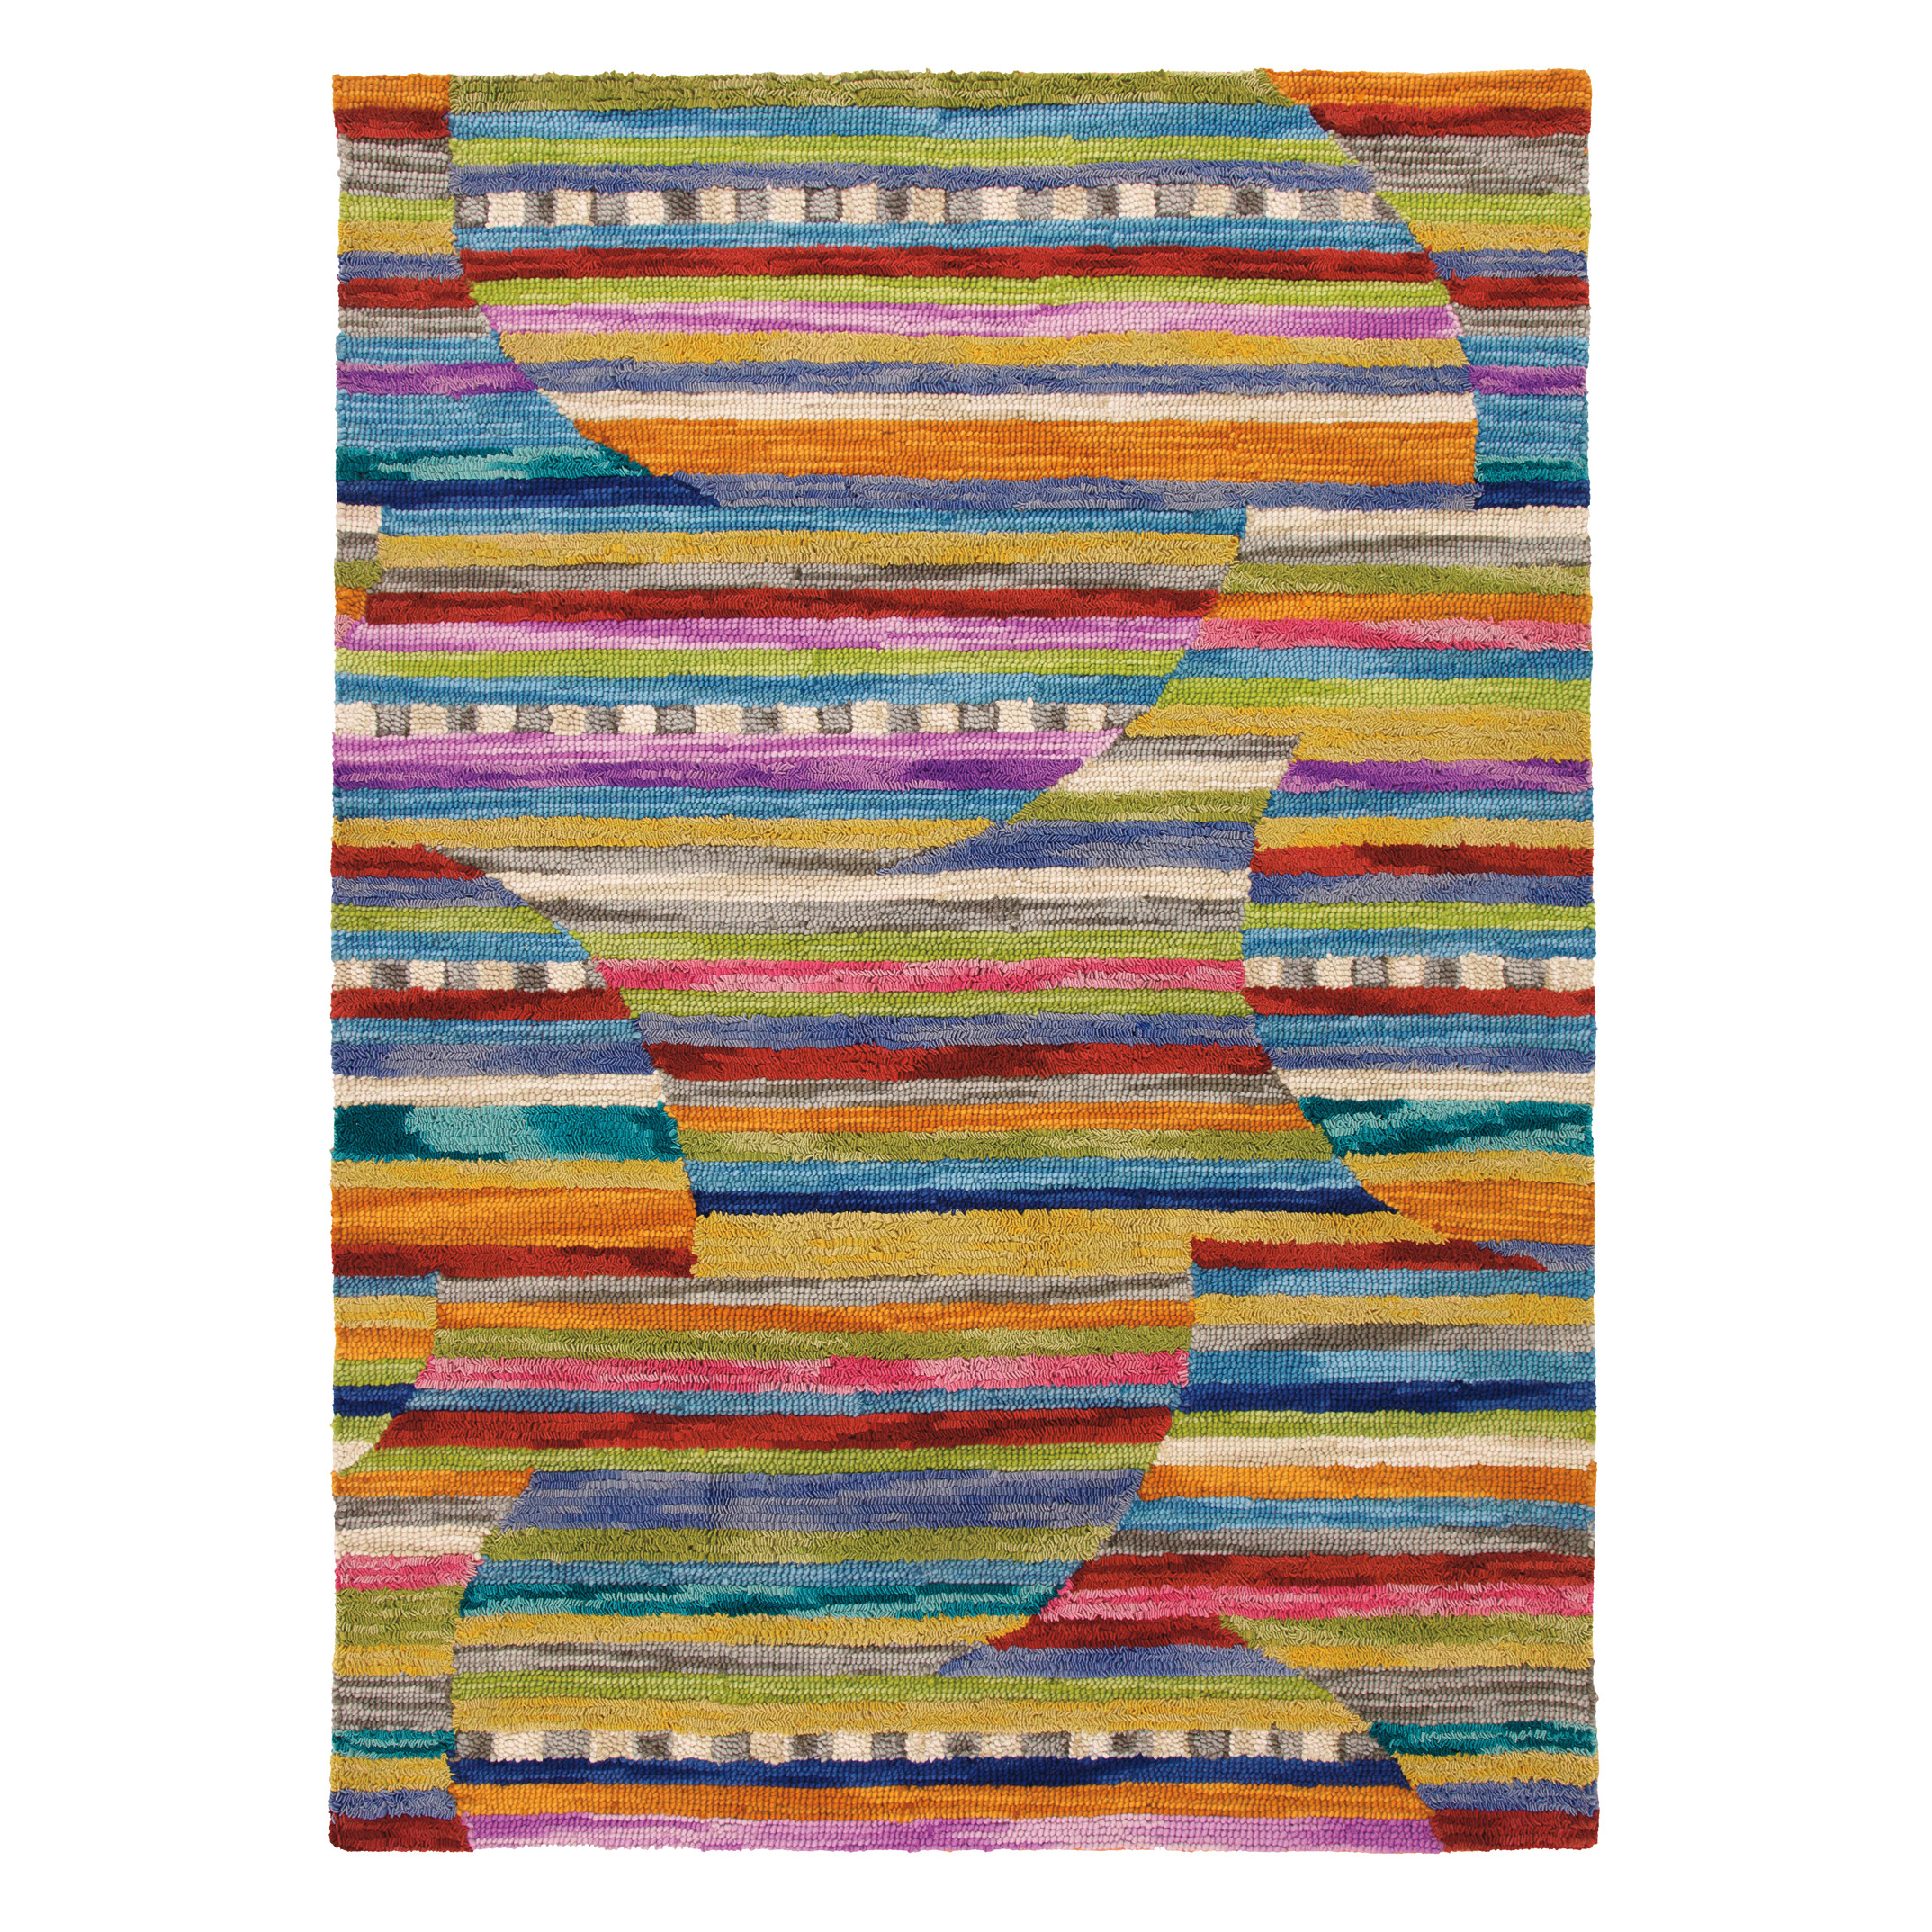 alluring Decorative Design company c rugs with harmony colors for indoor or outdoor ideas